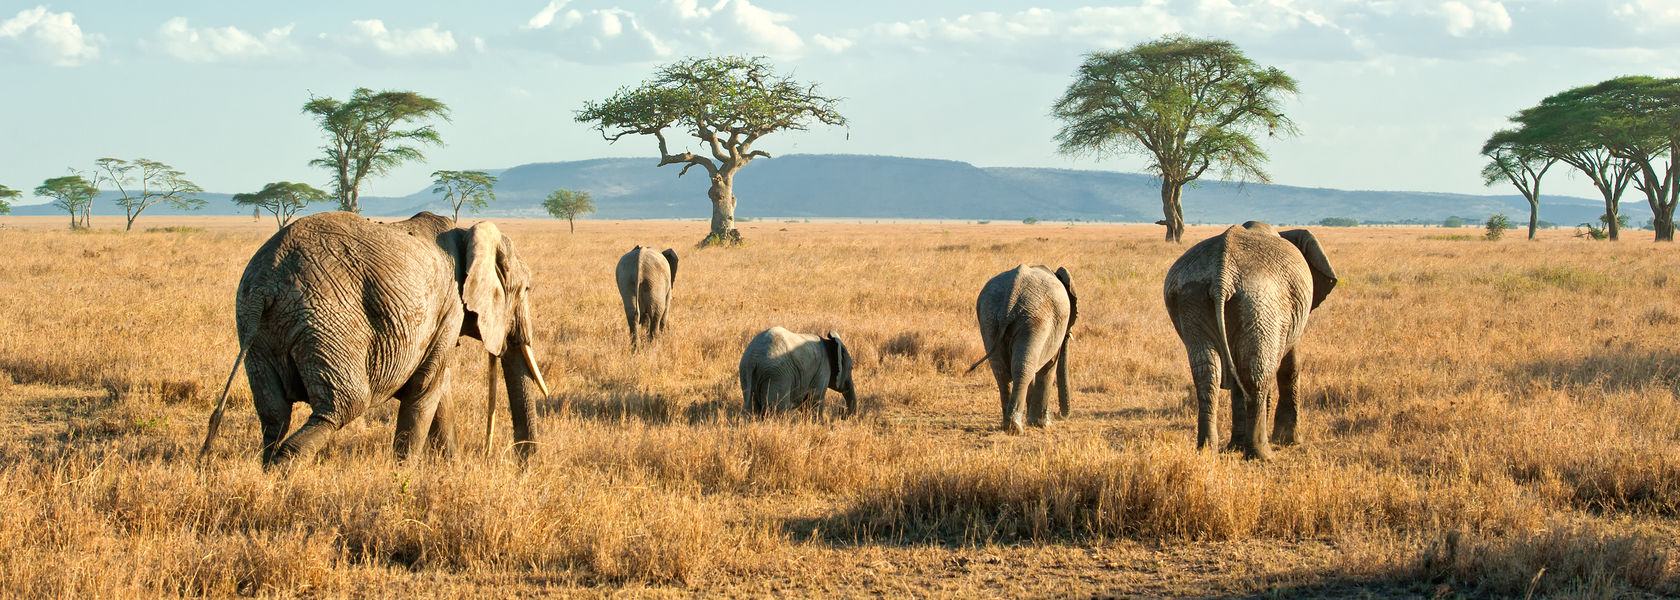 Serengeti Safari - Bezoek Serengeti National Park | Matoke Tours